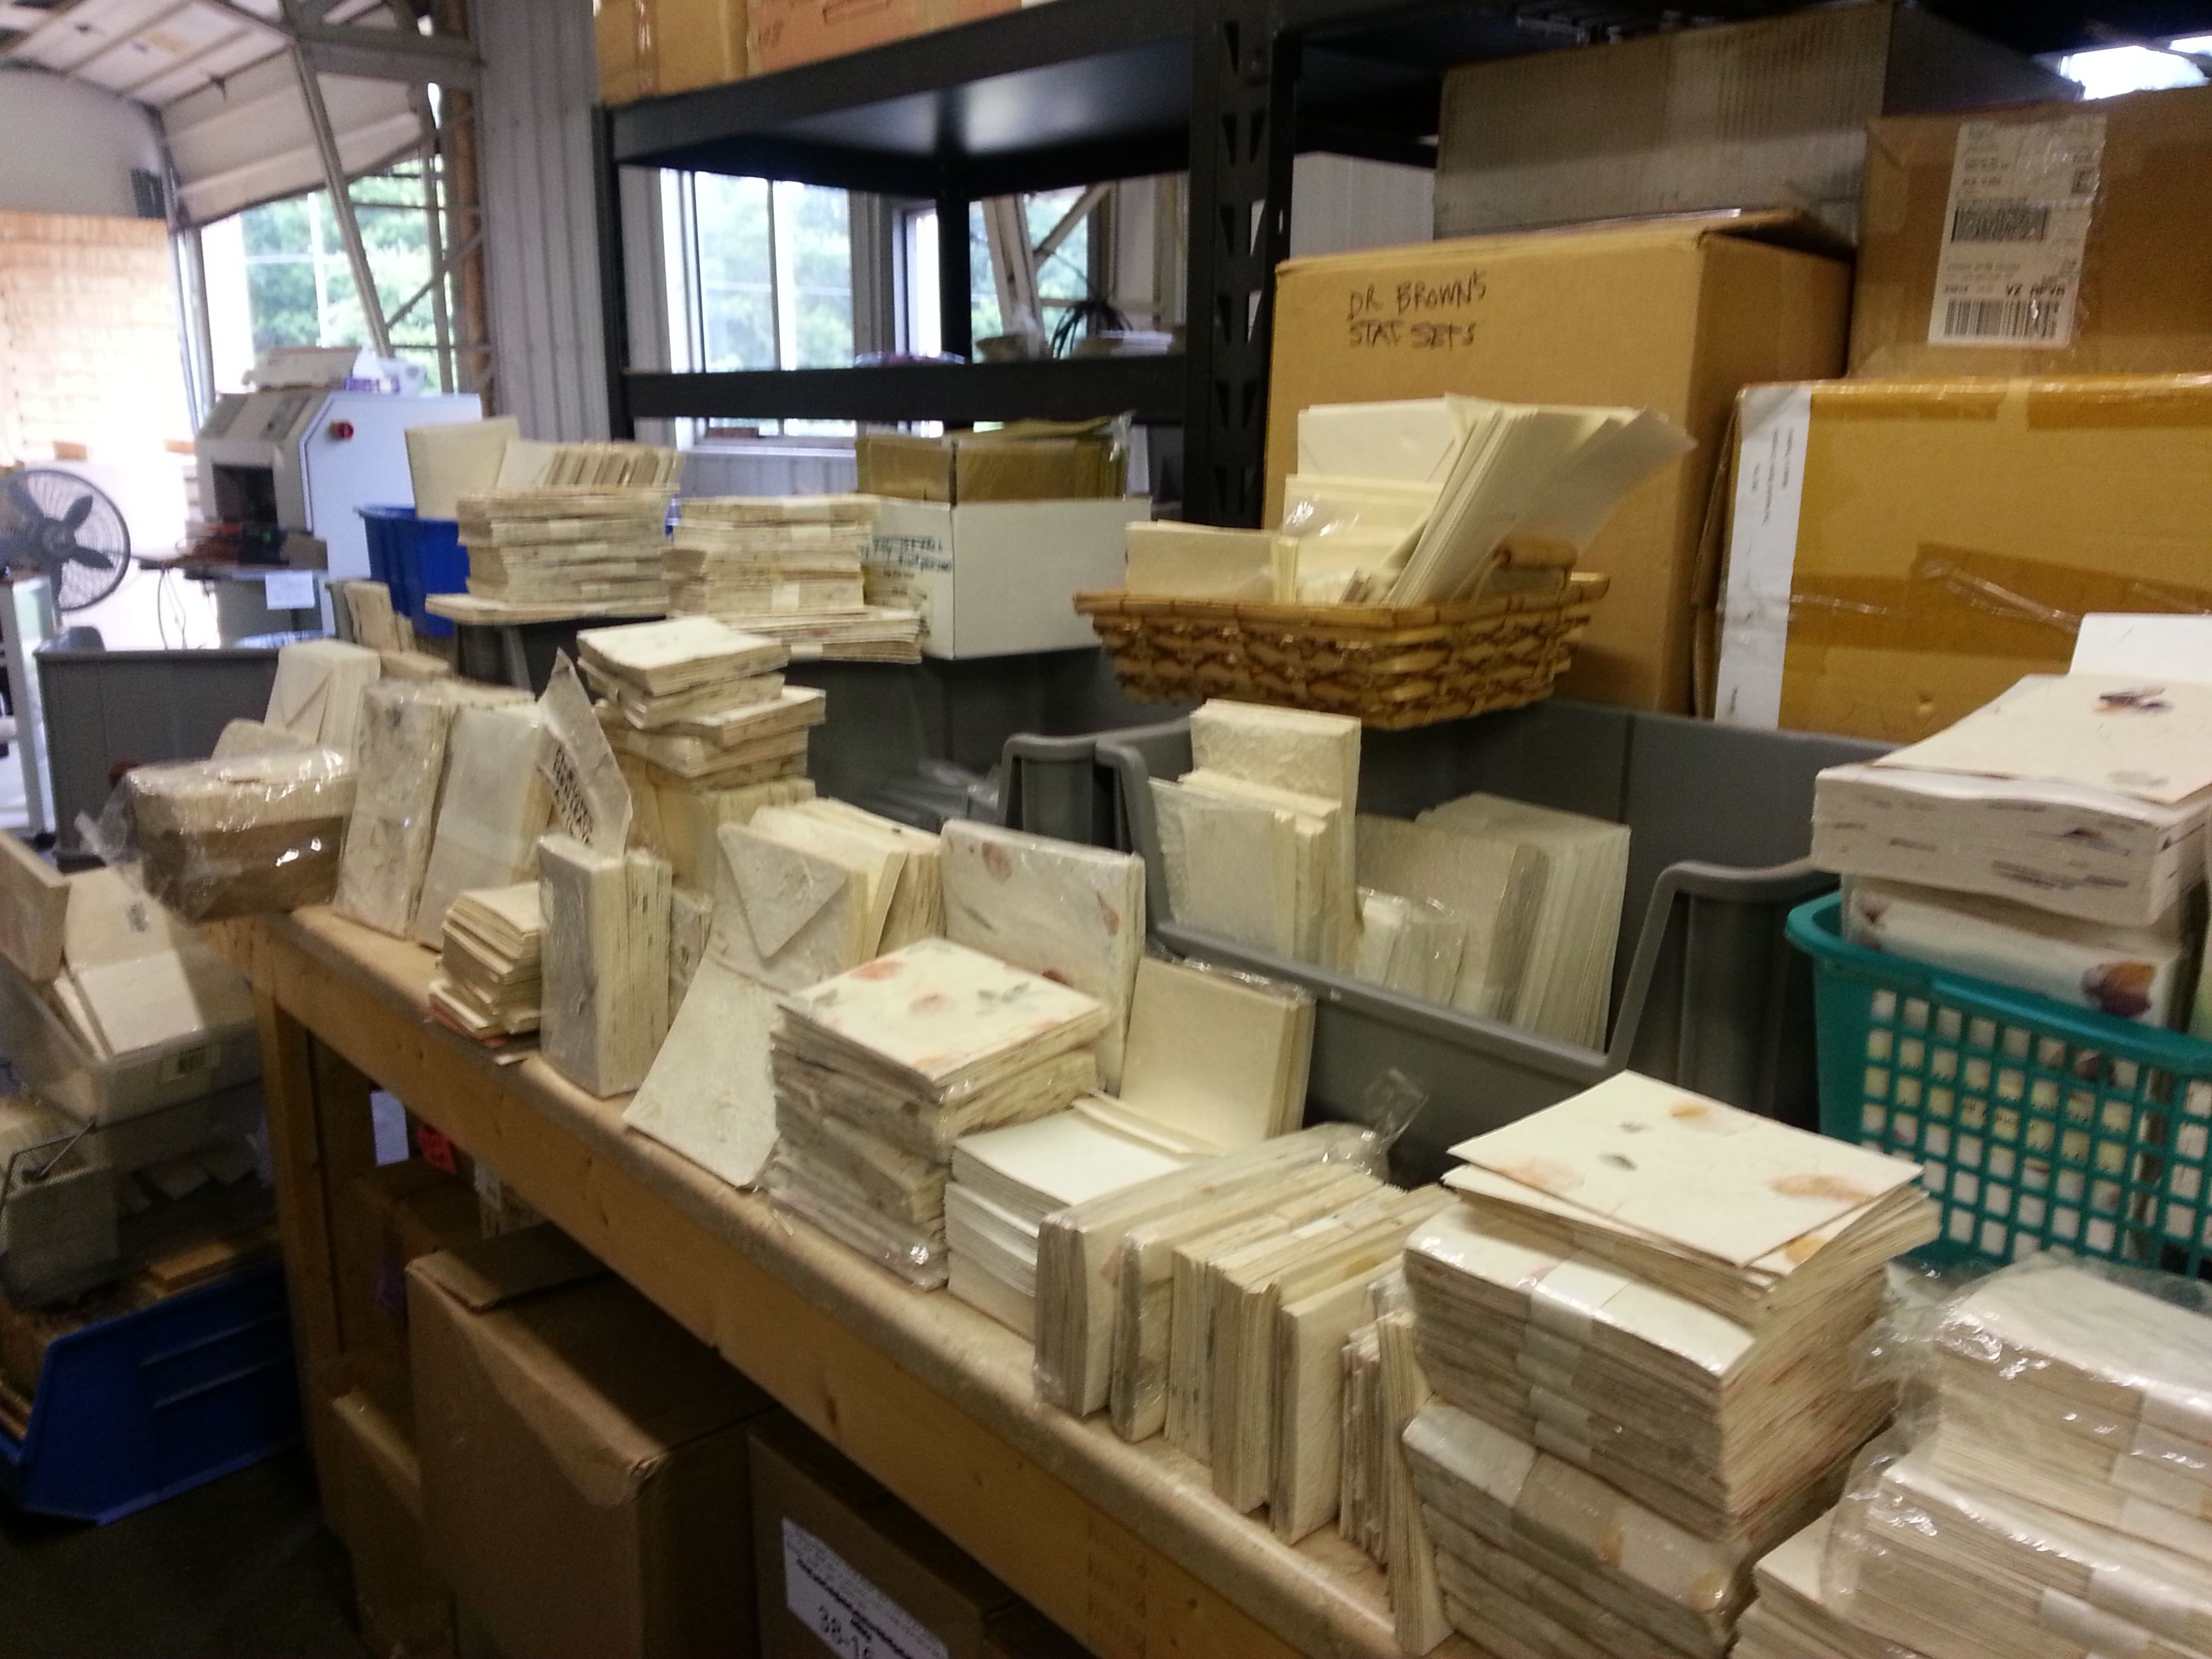 We got those boxes sorted, but there is lots of stationery. We are so excited - it is so beautiful!